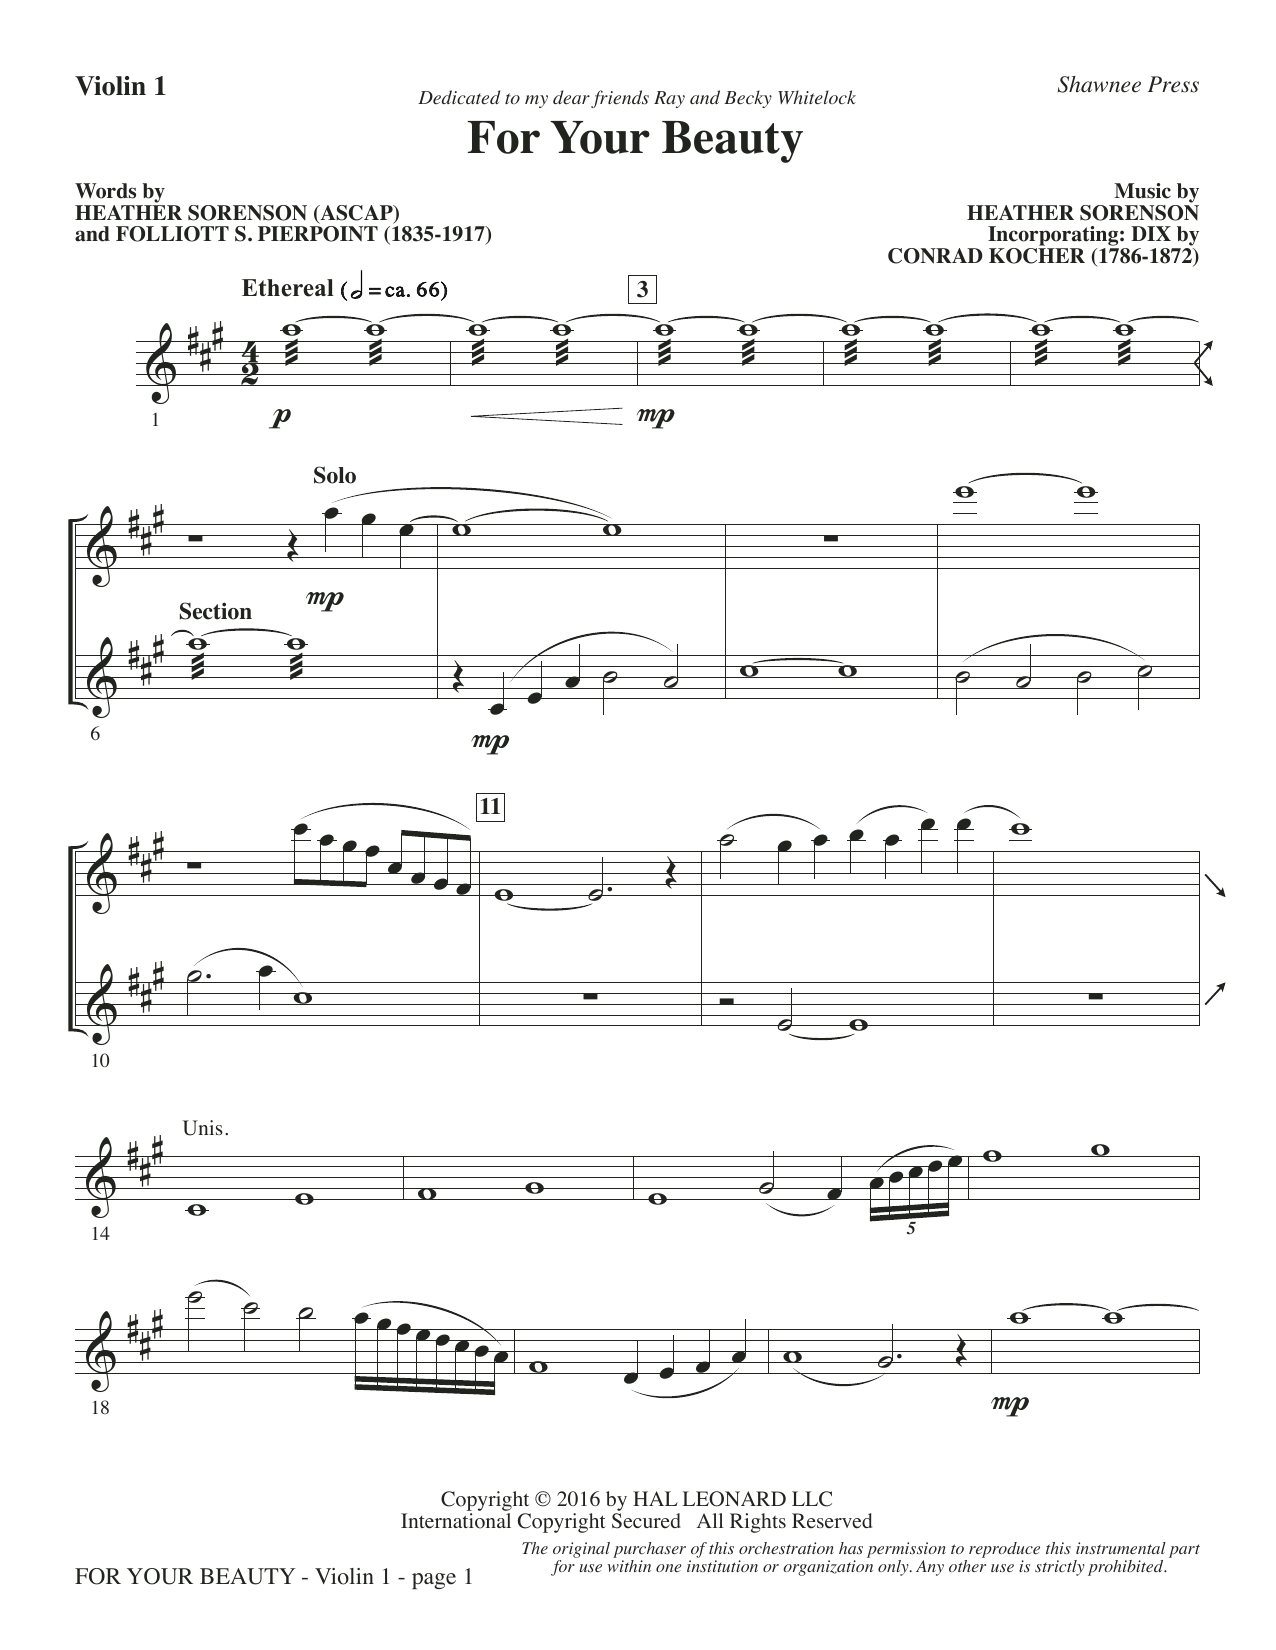 For Your Beauty - Violin 1 Sheet Music